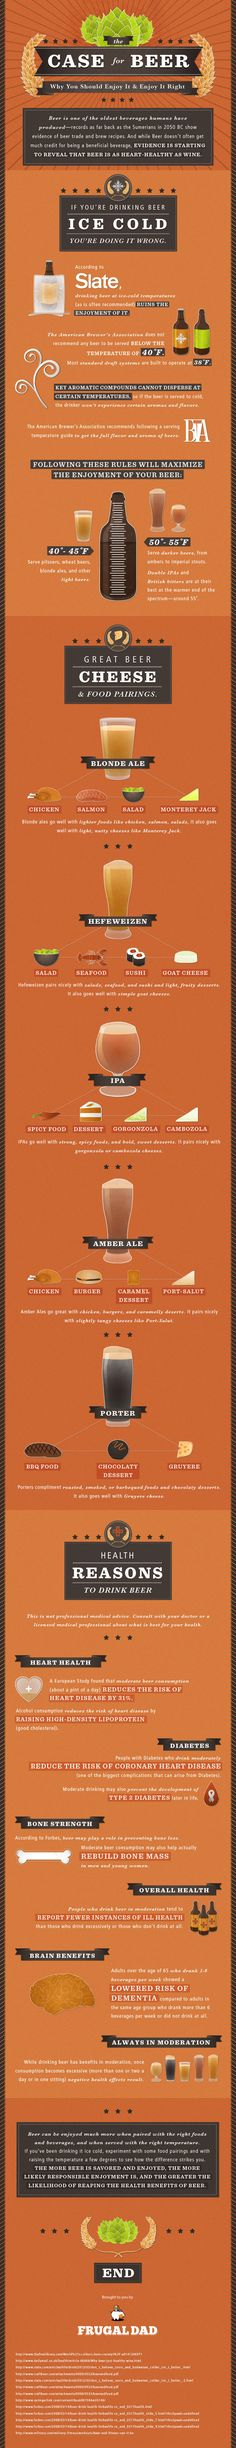 The Case for Beer: Why You Should Enjoy it and Enjoy it Right (Infographic)